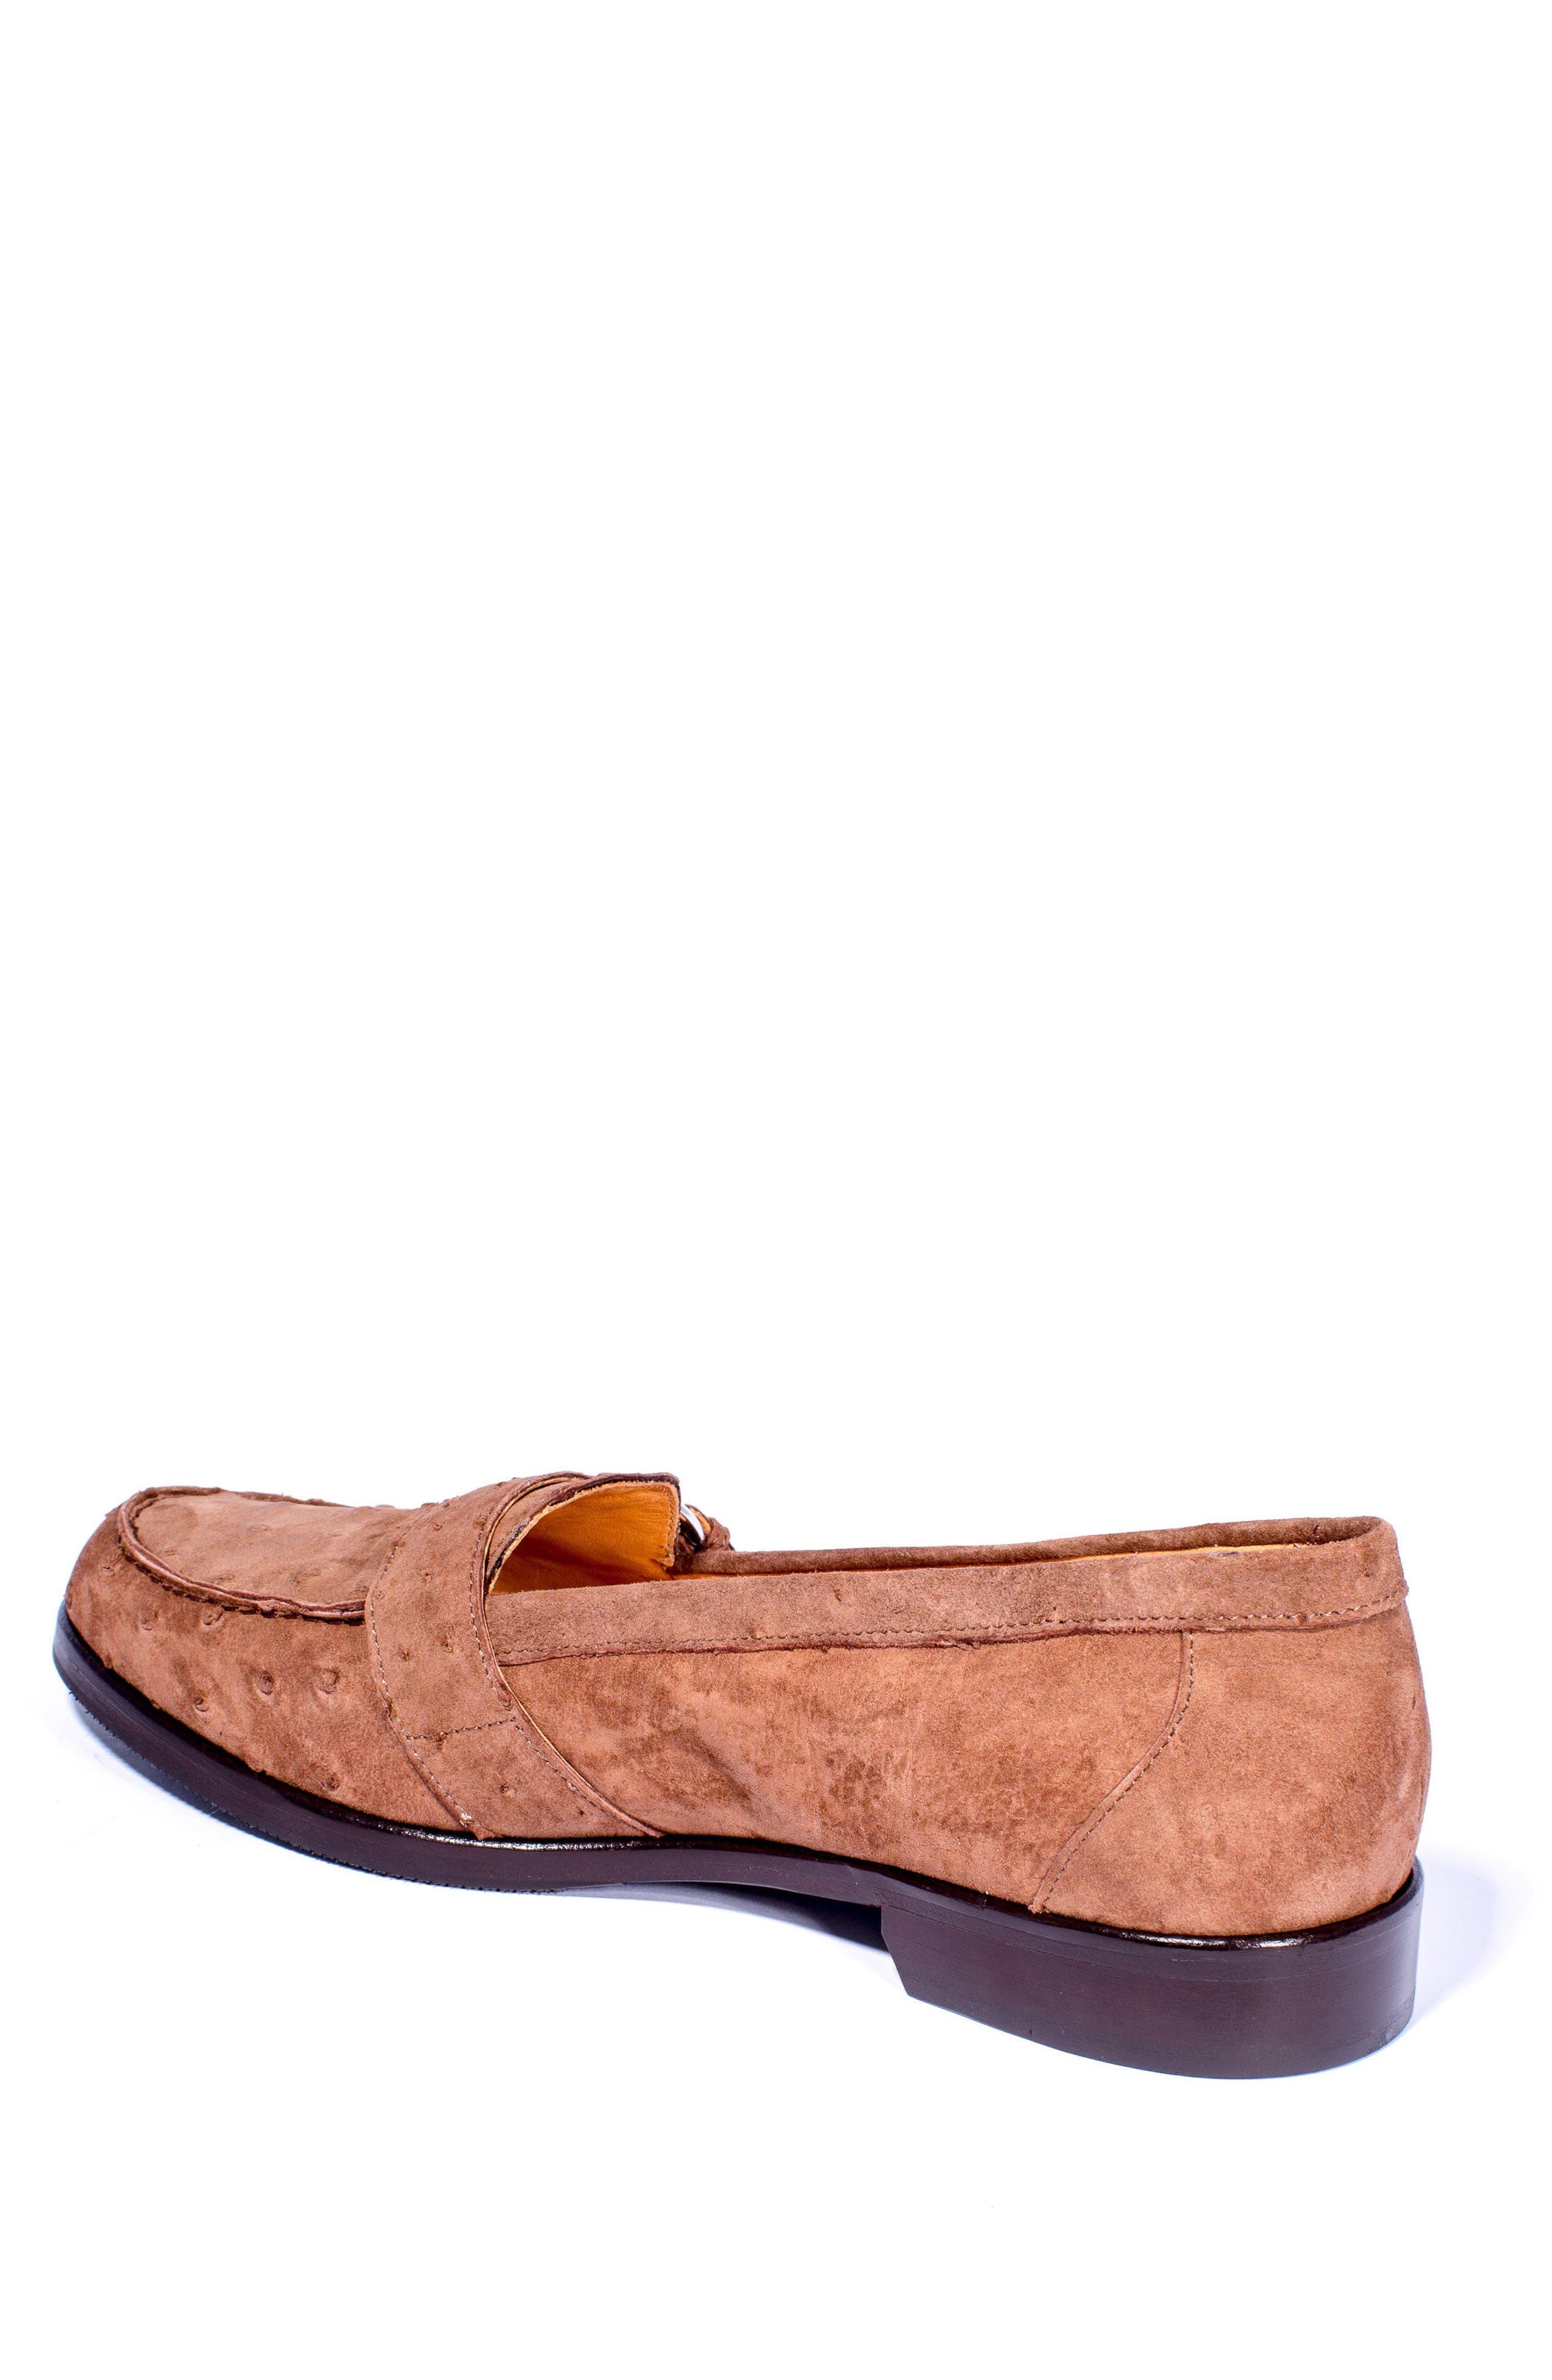 Orlando Teju Ostrich Loafer,                             Alternate thumbnail 2, color,                             Brown